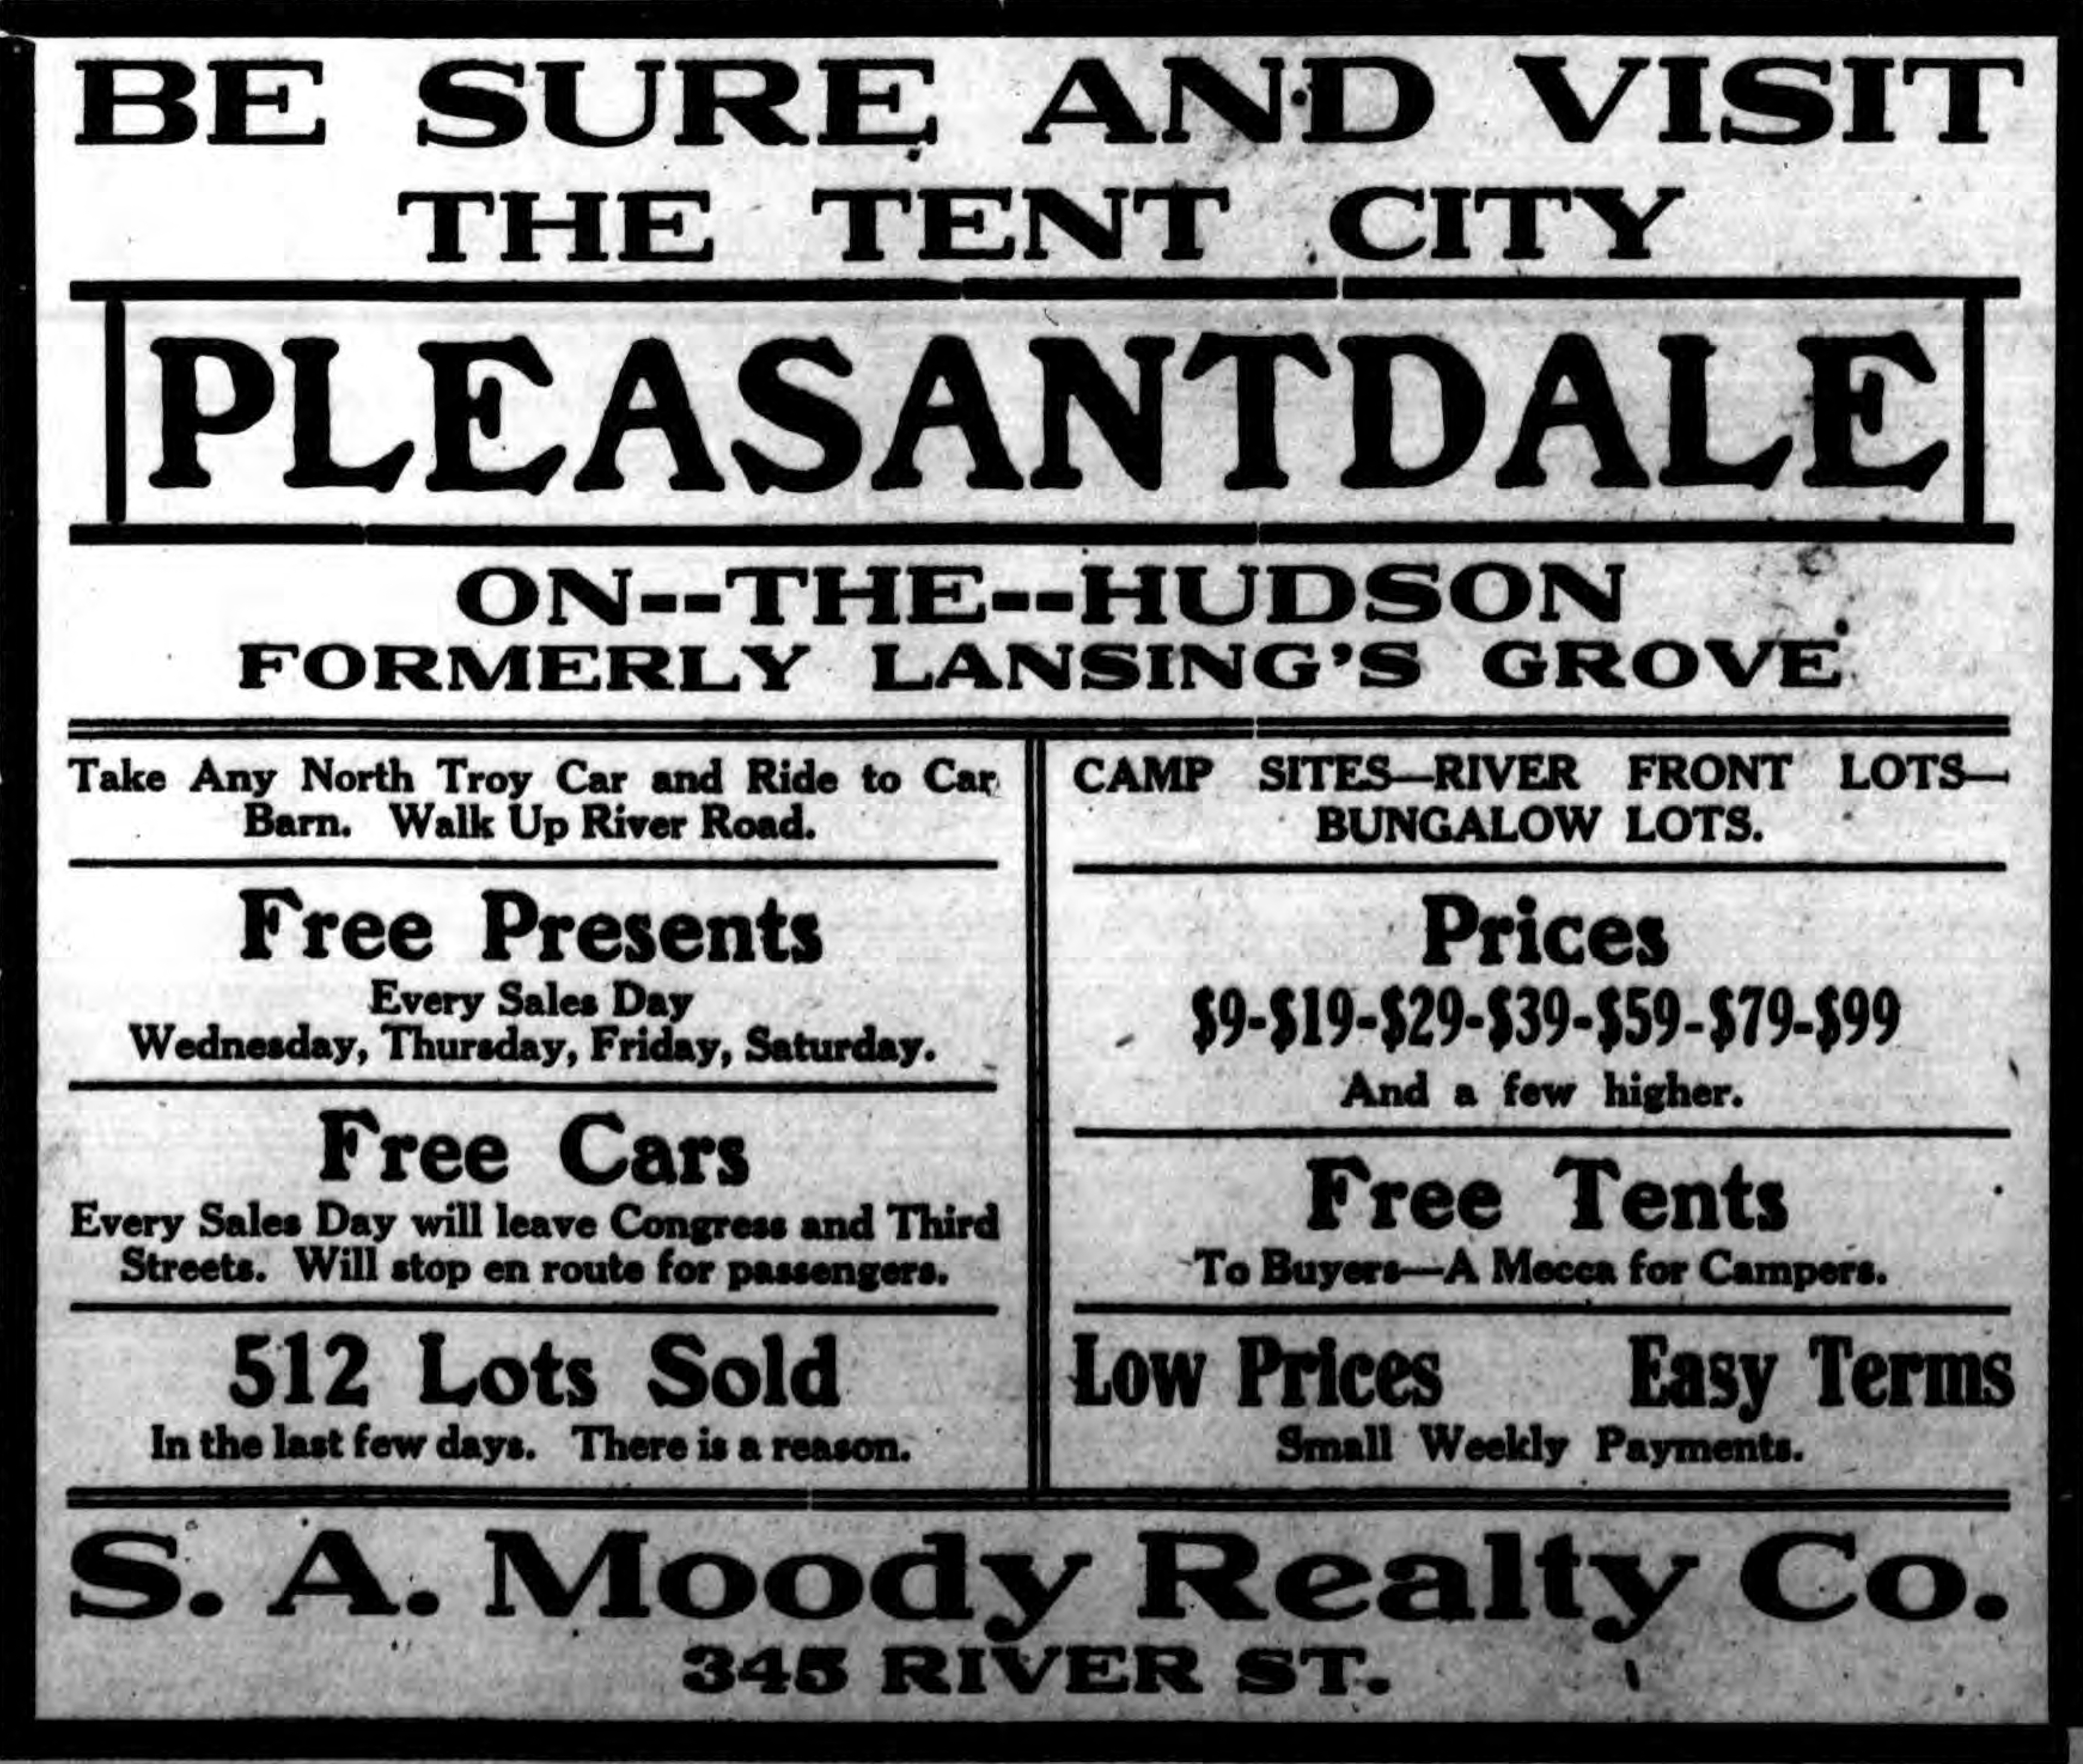 """Advertisement """"Be sure and visit the tent city Pleasantdale-on-the-Hudson Formerly Lansing's Grove"""